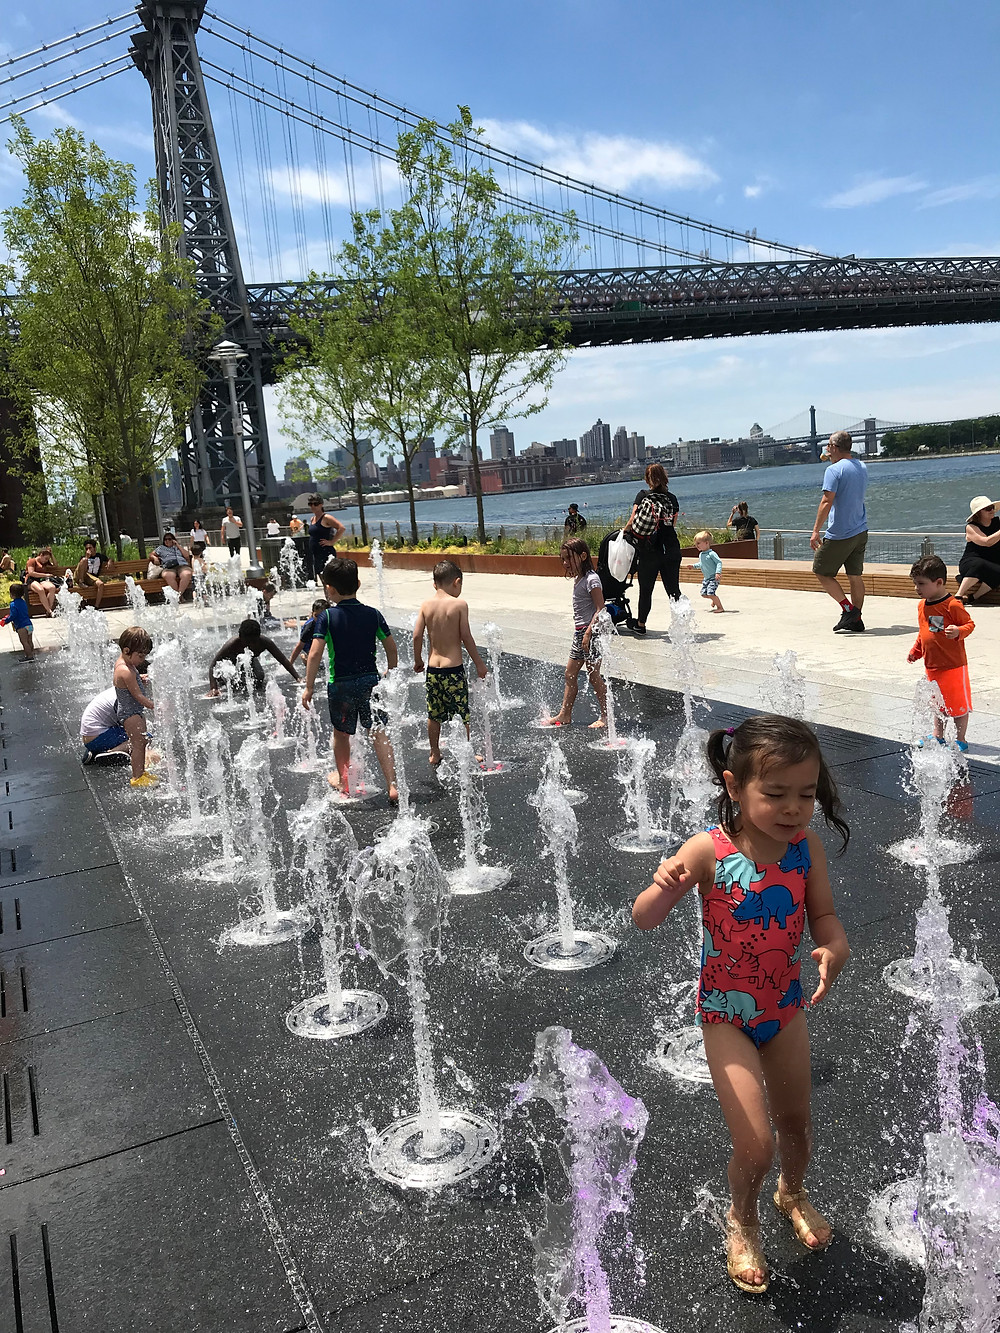 things to do in Williamsburg with kids, things to do in nyc with kids, domino park, nyc kids, tacocina, nyc sprinklers, nyc playgrounds